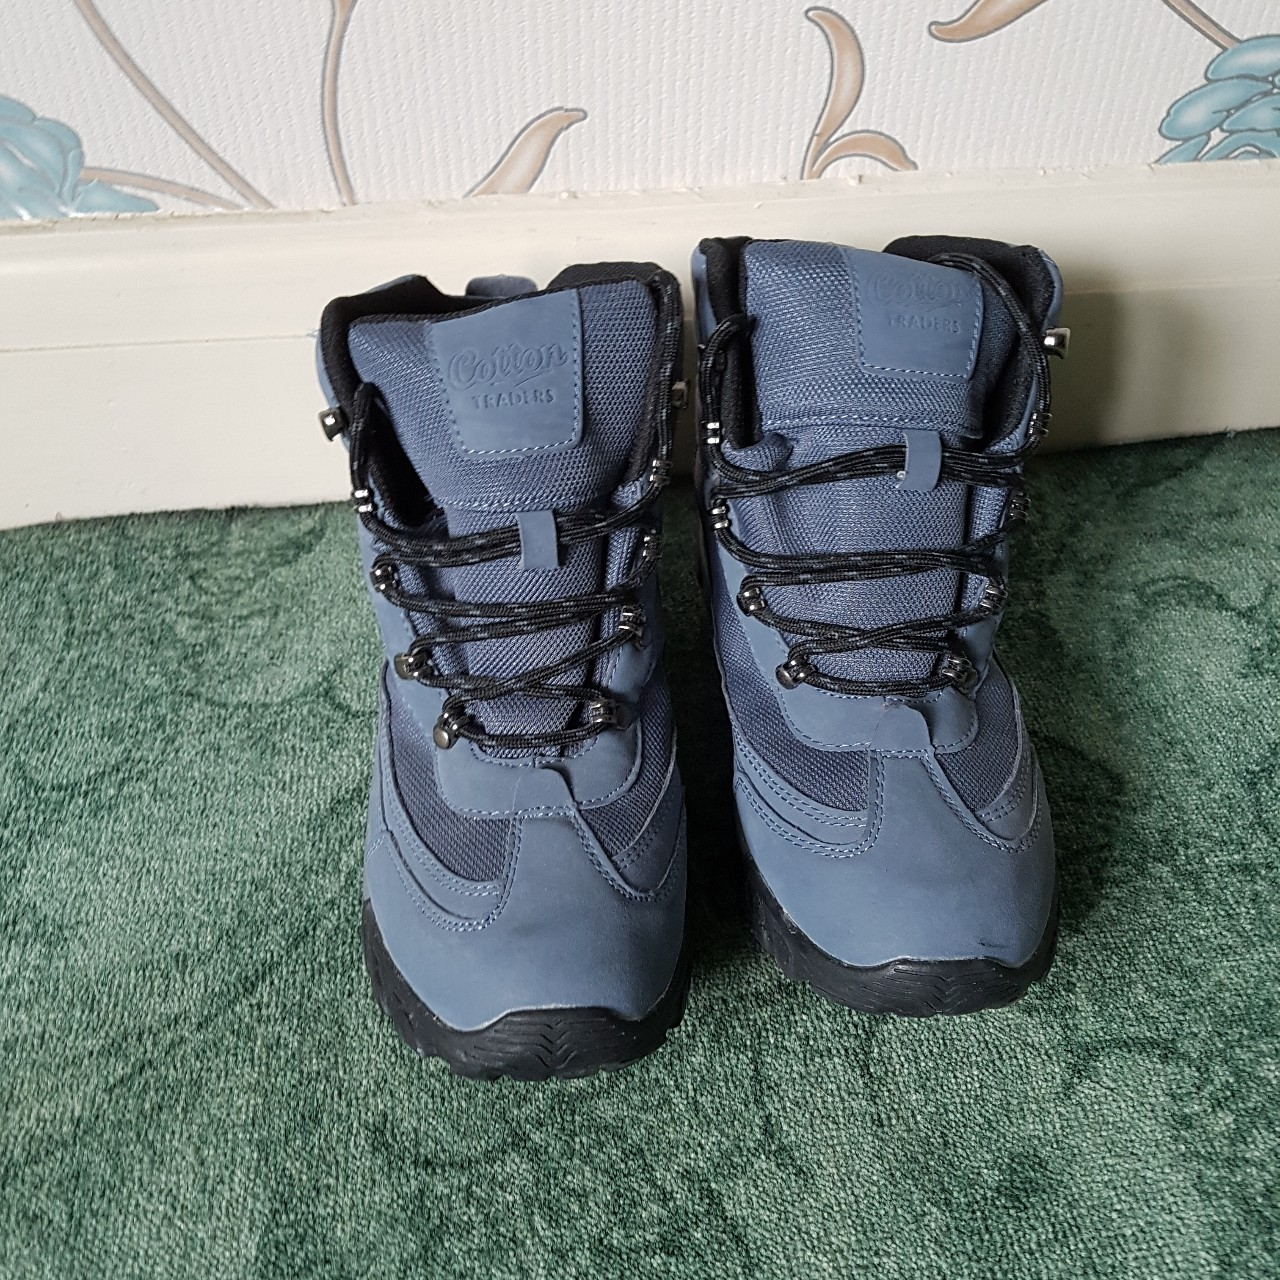 Cotton Traders hiking boots in